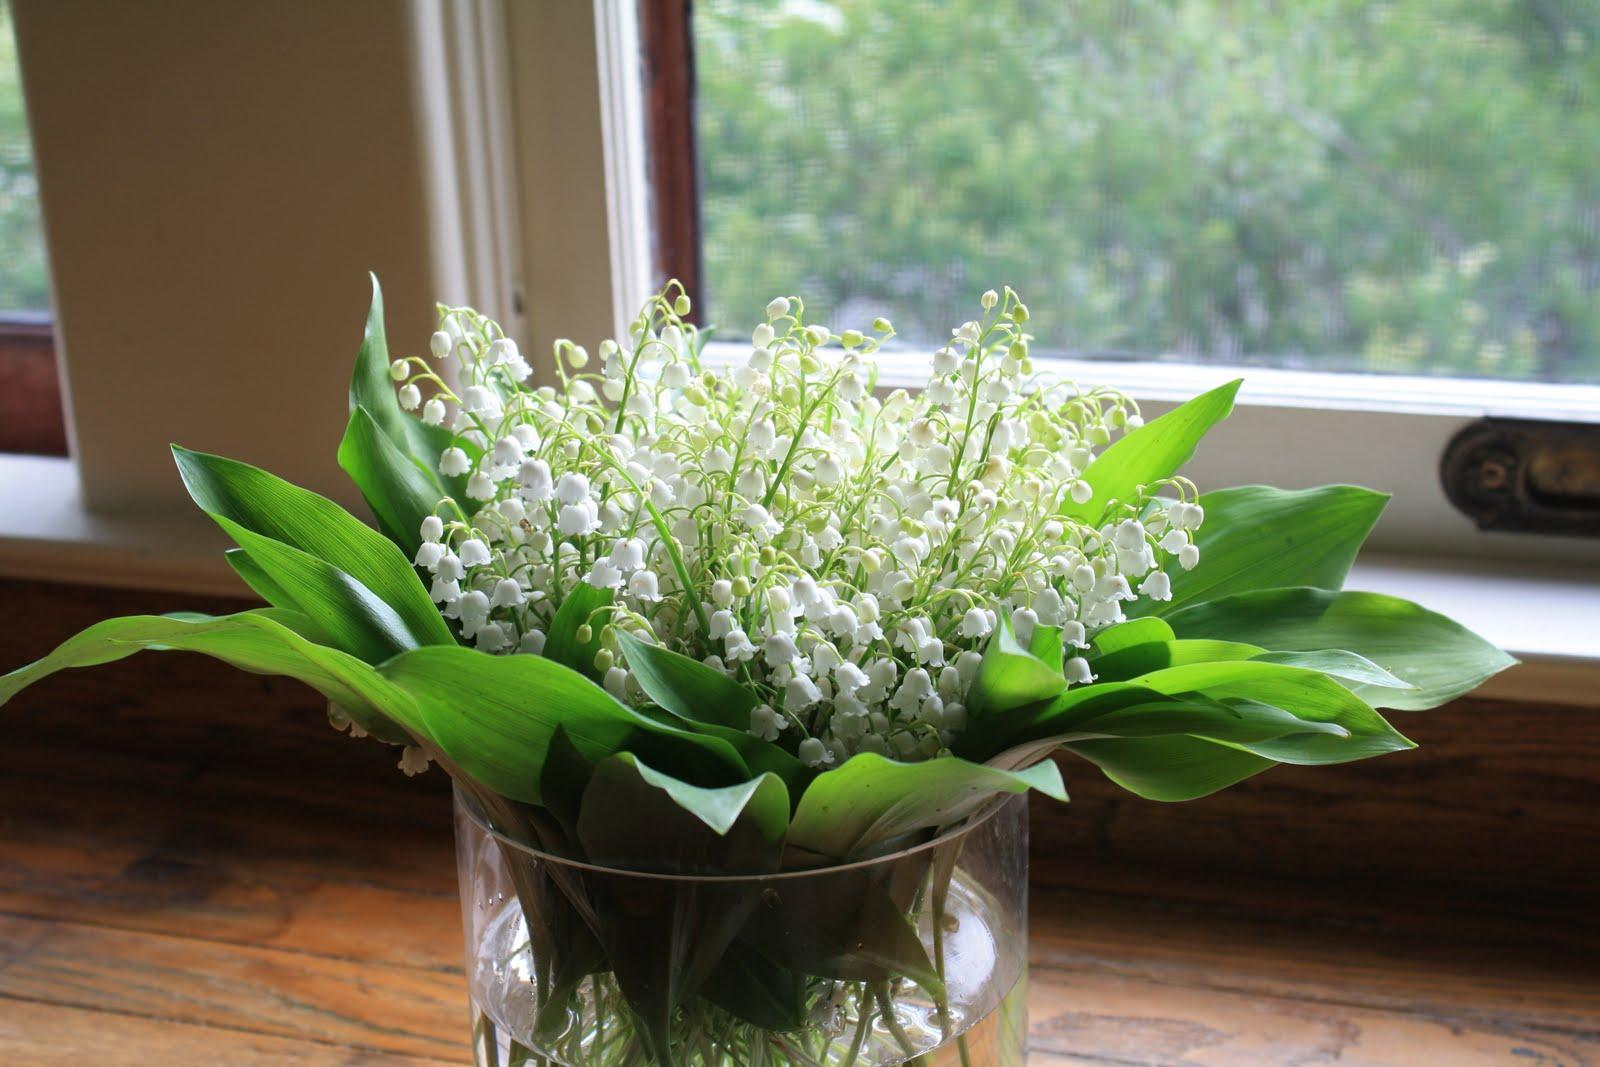 Now that my Lily of the Valley